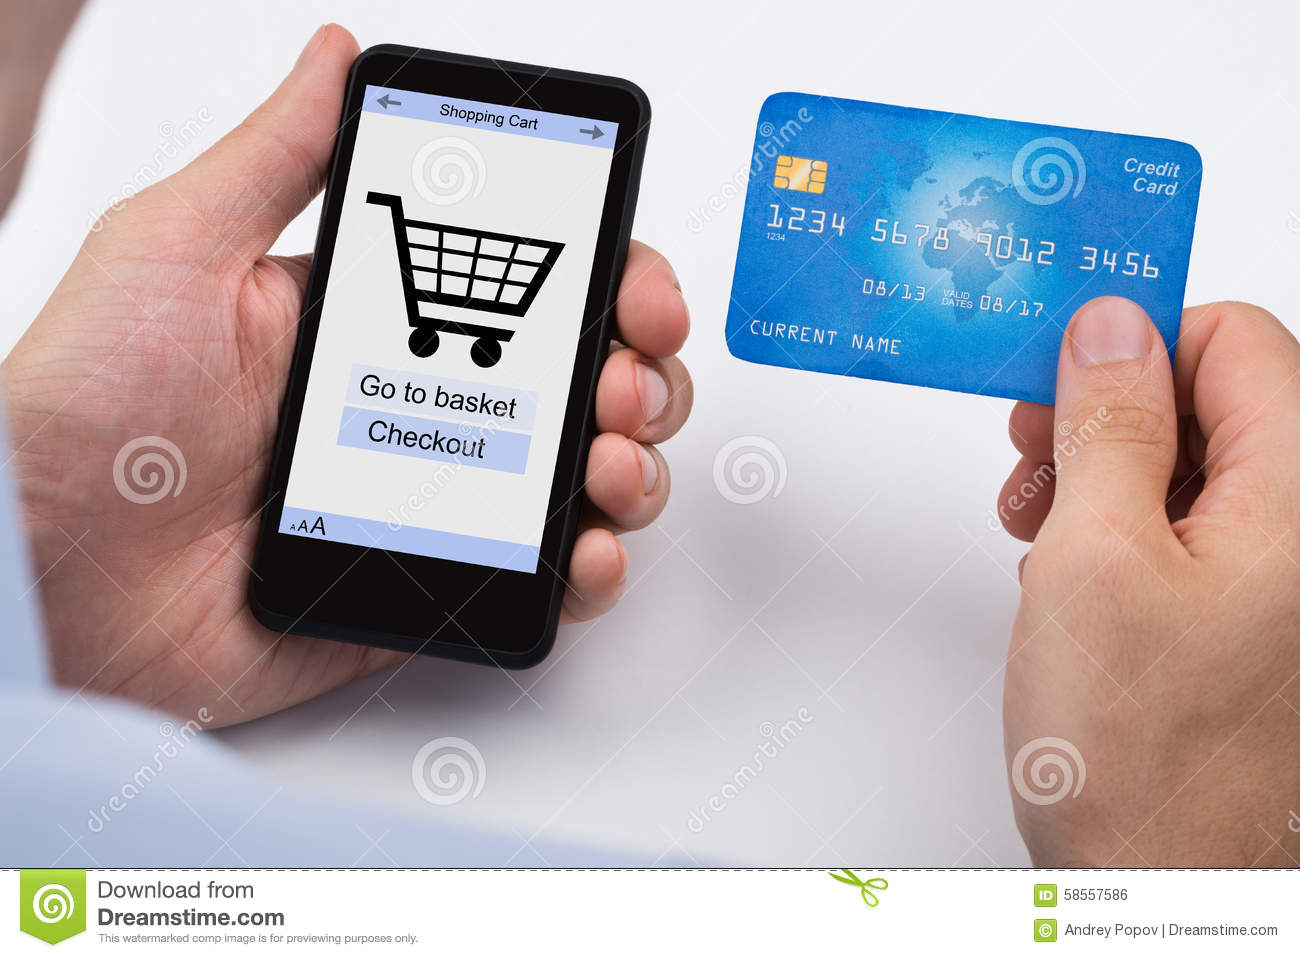 person-shopping-online-mobile-phone-close-up-credit-card-58557586.jpg